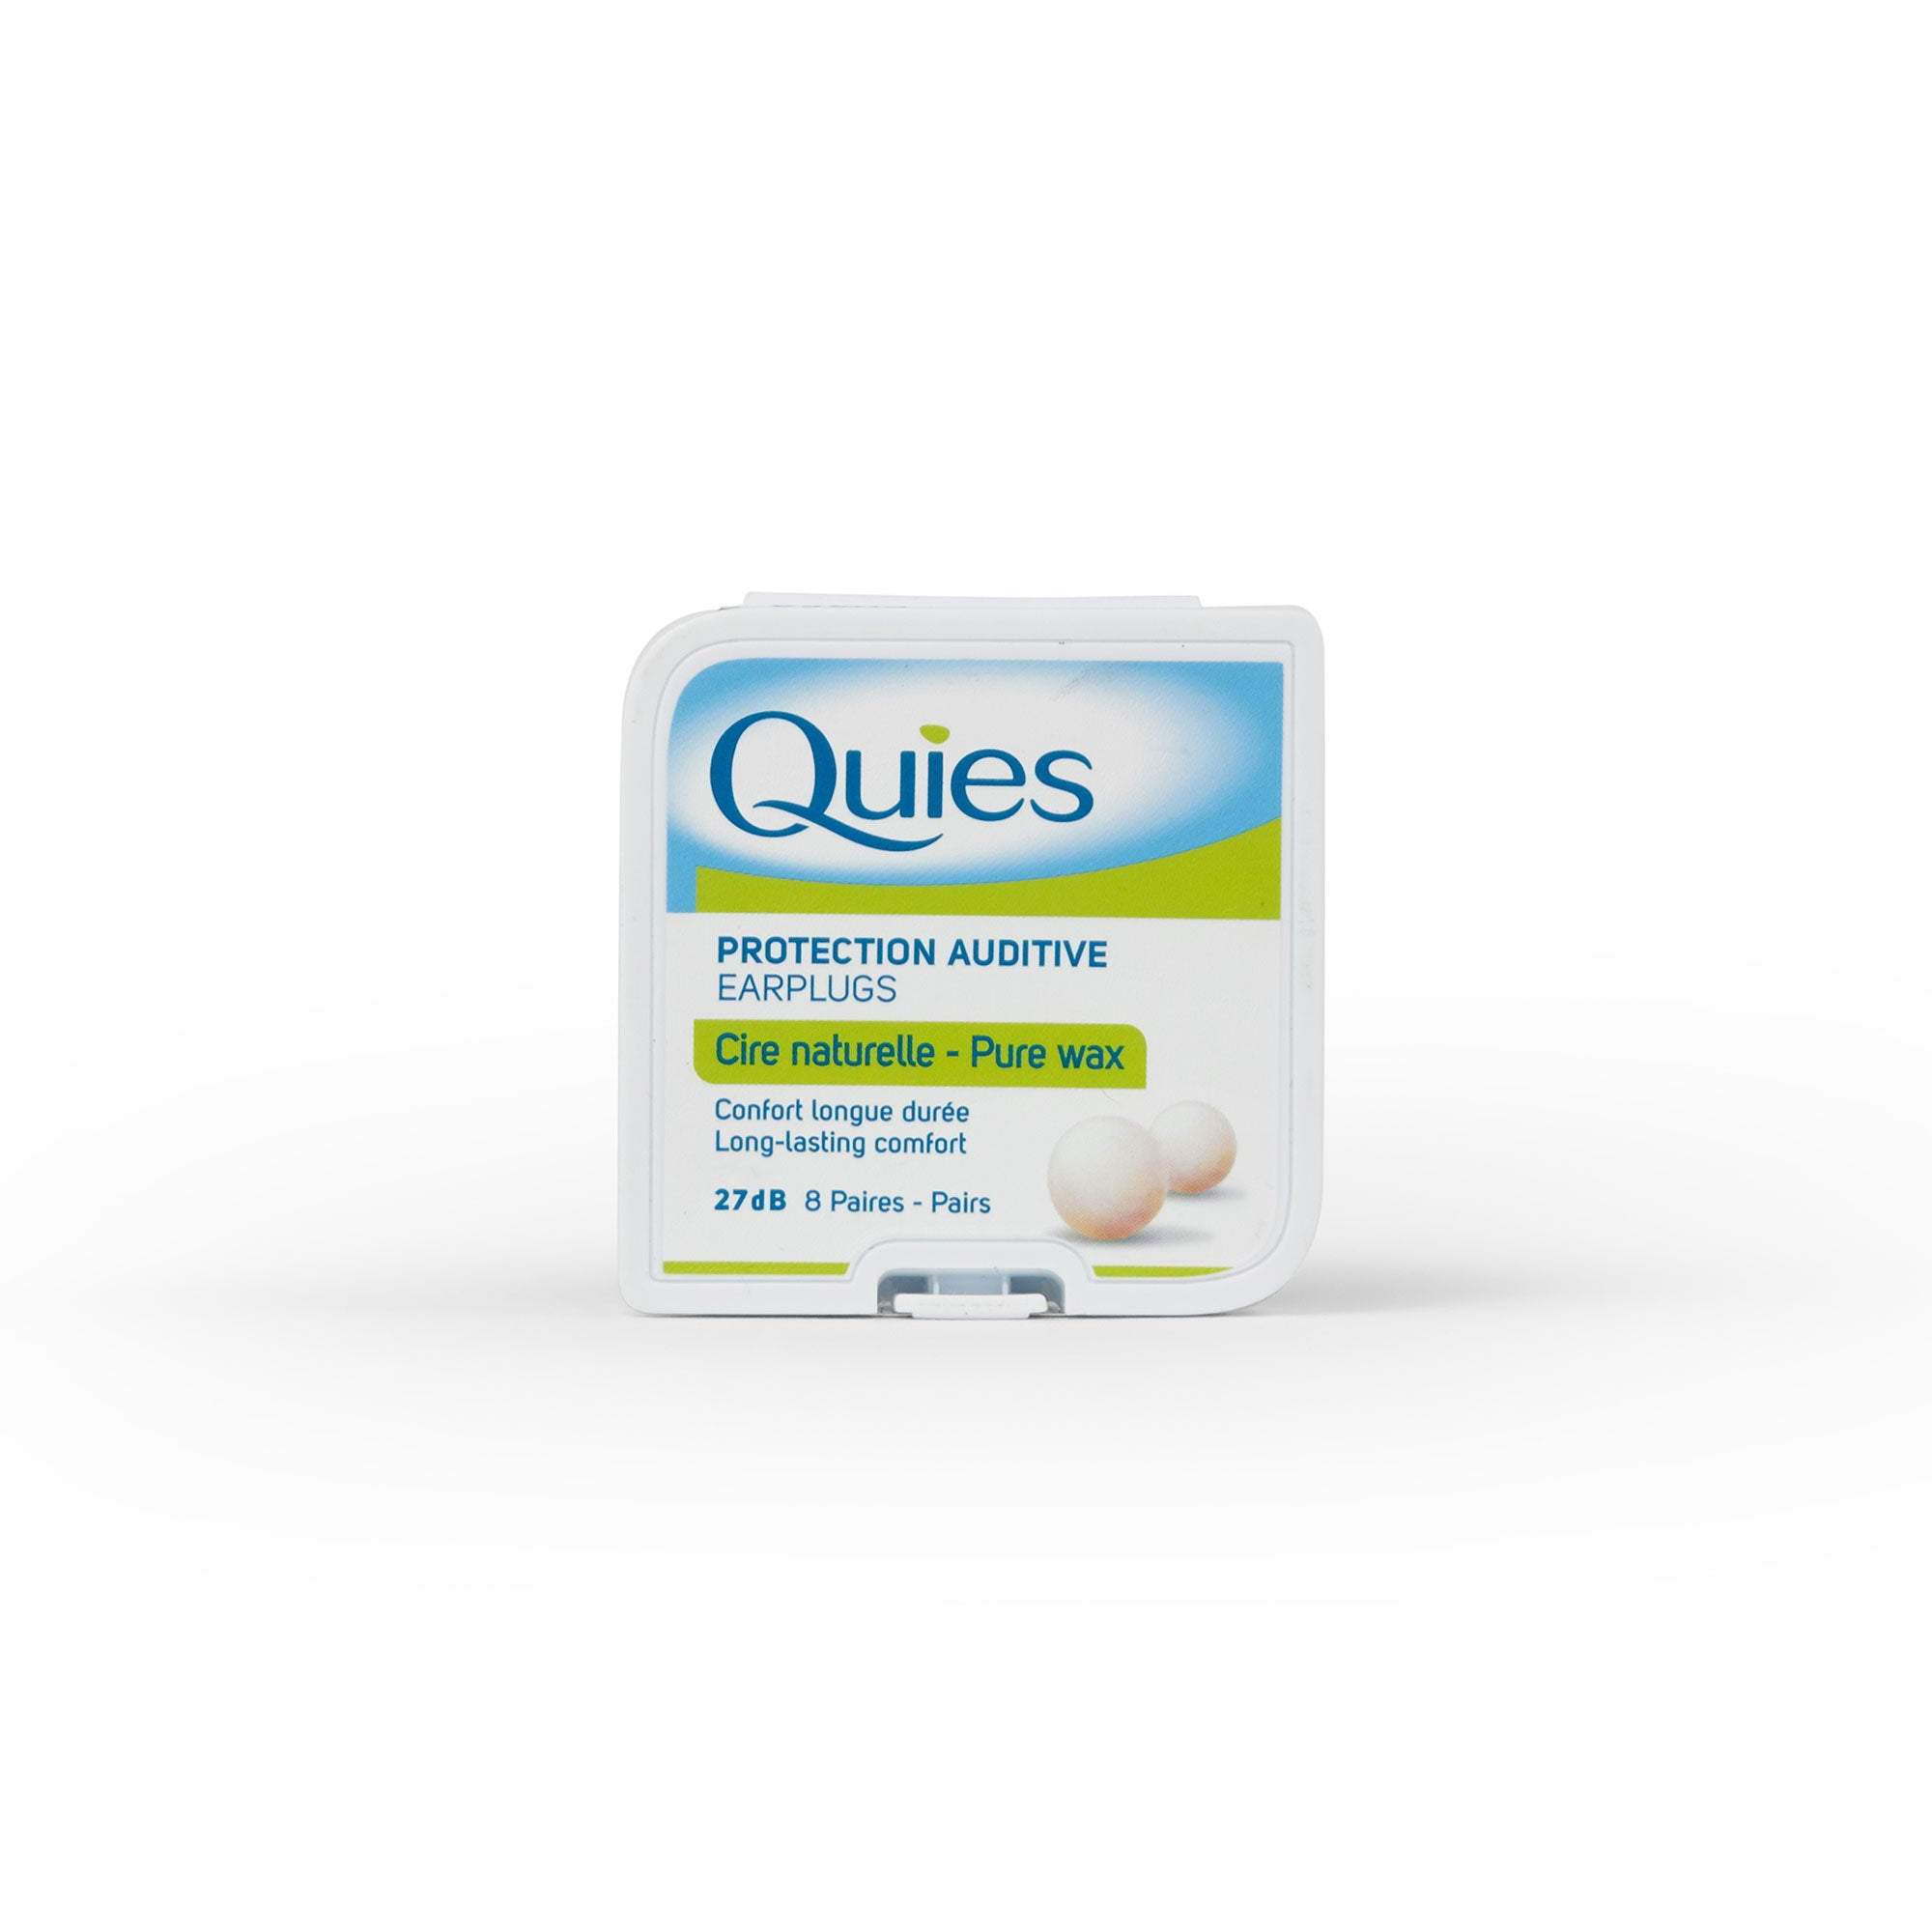 Boules Quies Ear Plugs